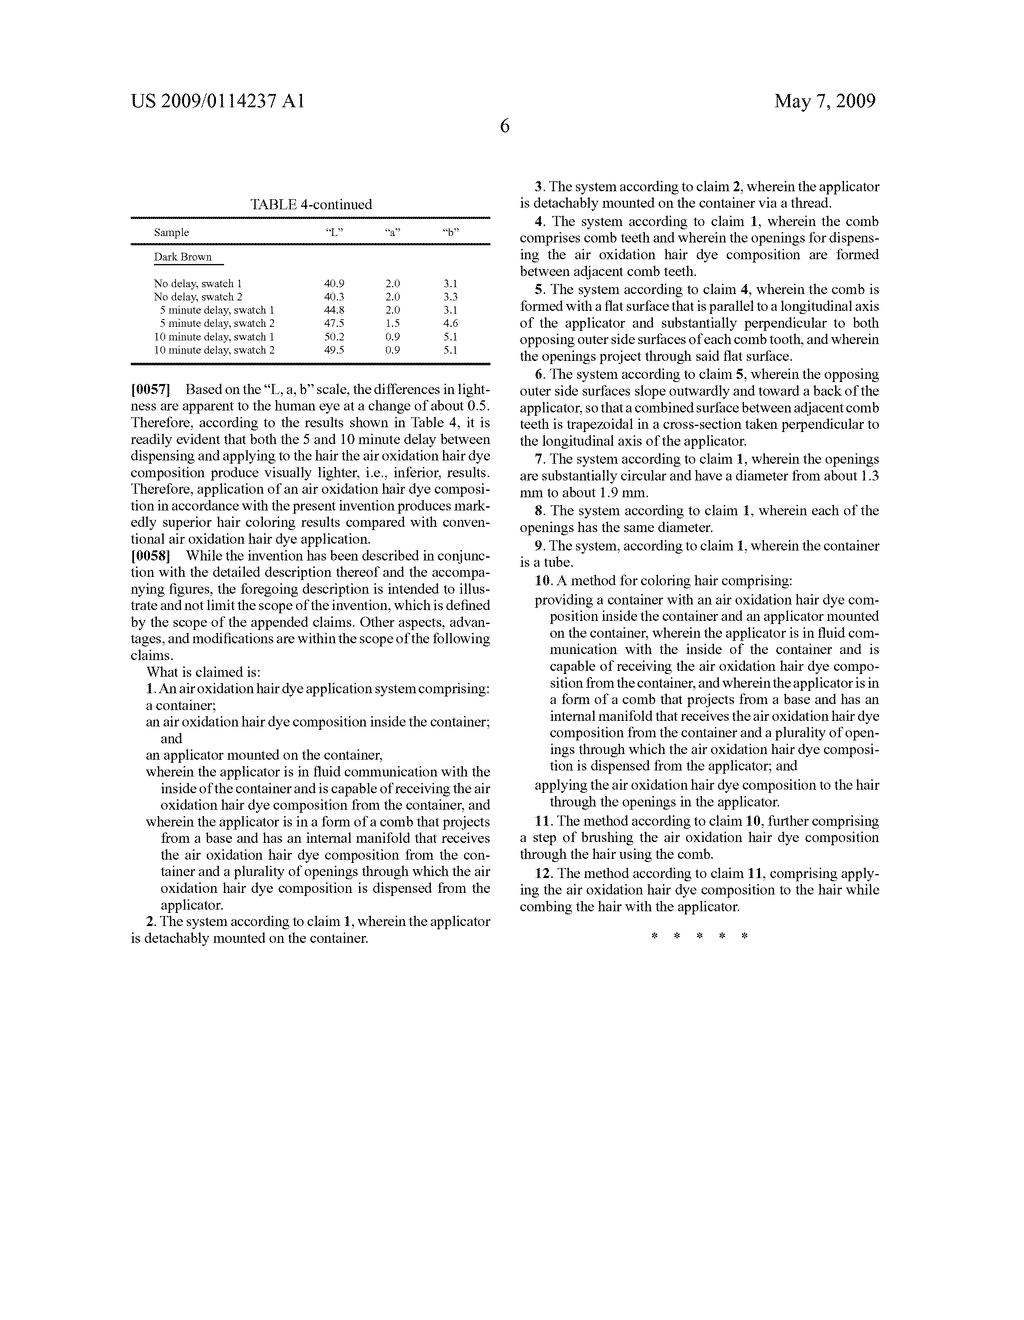 AIR OXIDATION HAIR DYE APPLICATION SYSTEM AND METHOD FOR COLORING HAIR USING THE SAME - diagram, schematic, and image 13